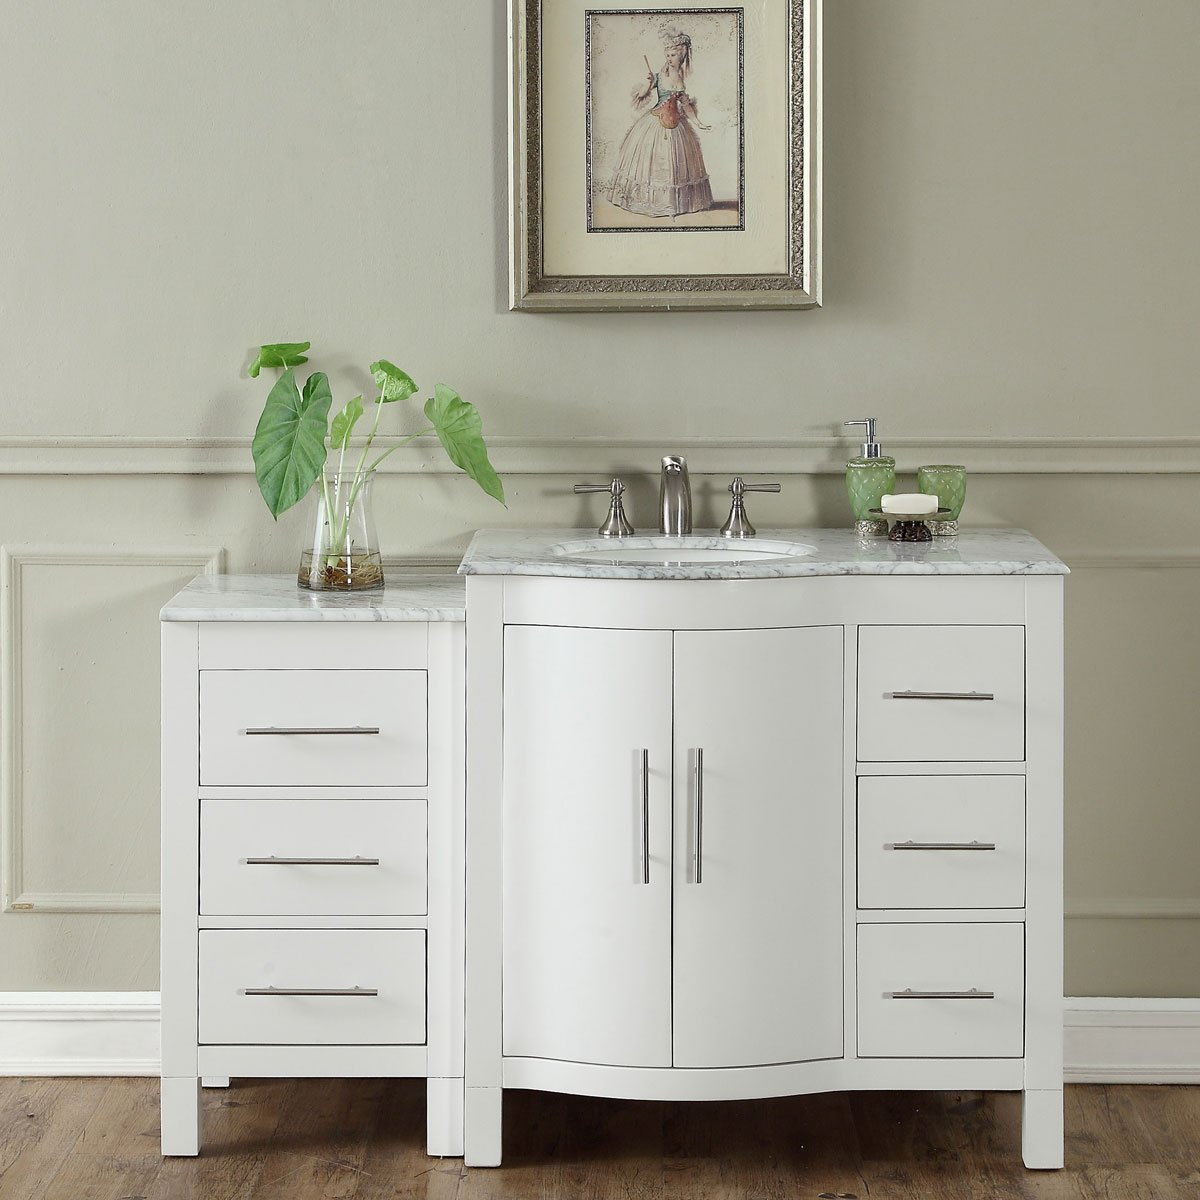 54 inch single sink contemporary bathroom vanity cabinet white finish carrara white marble White bathroom vanity cabinets